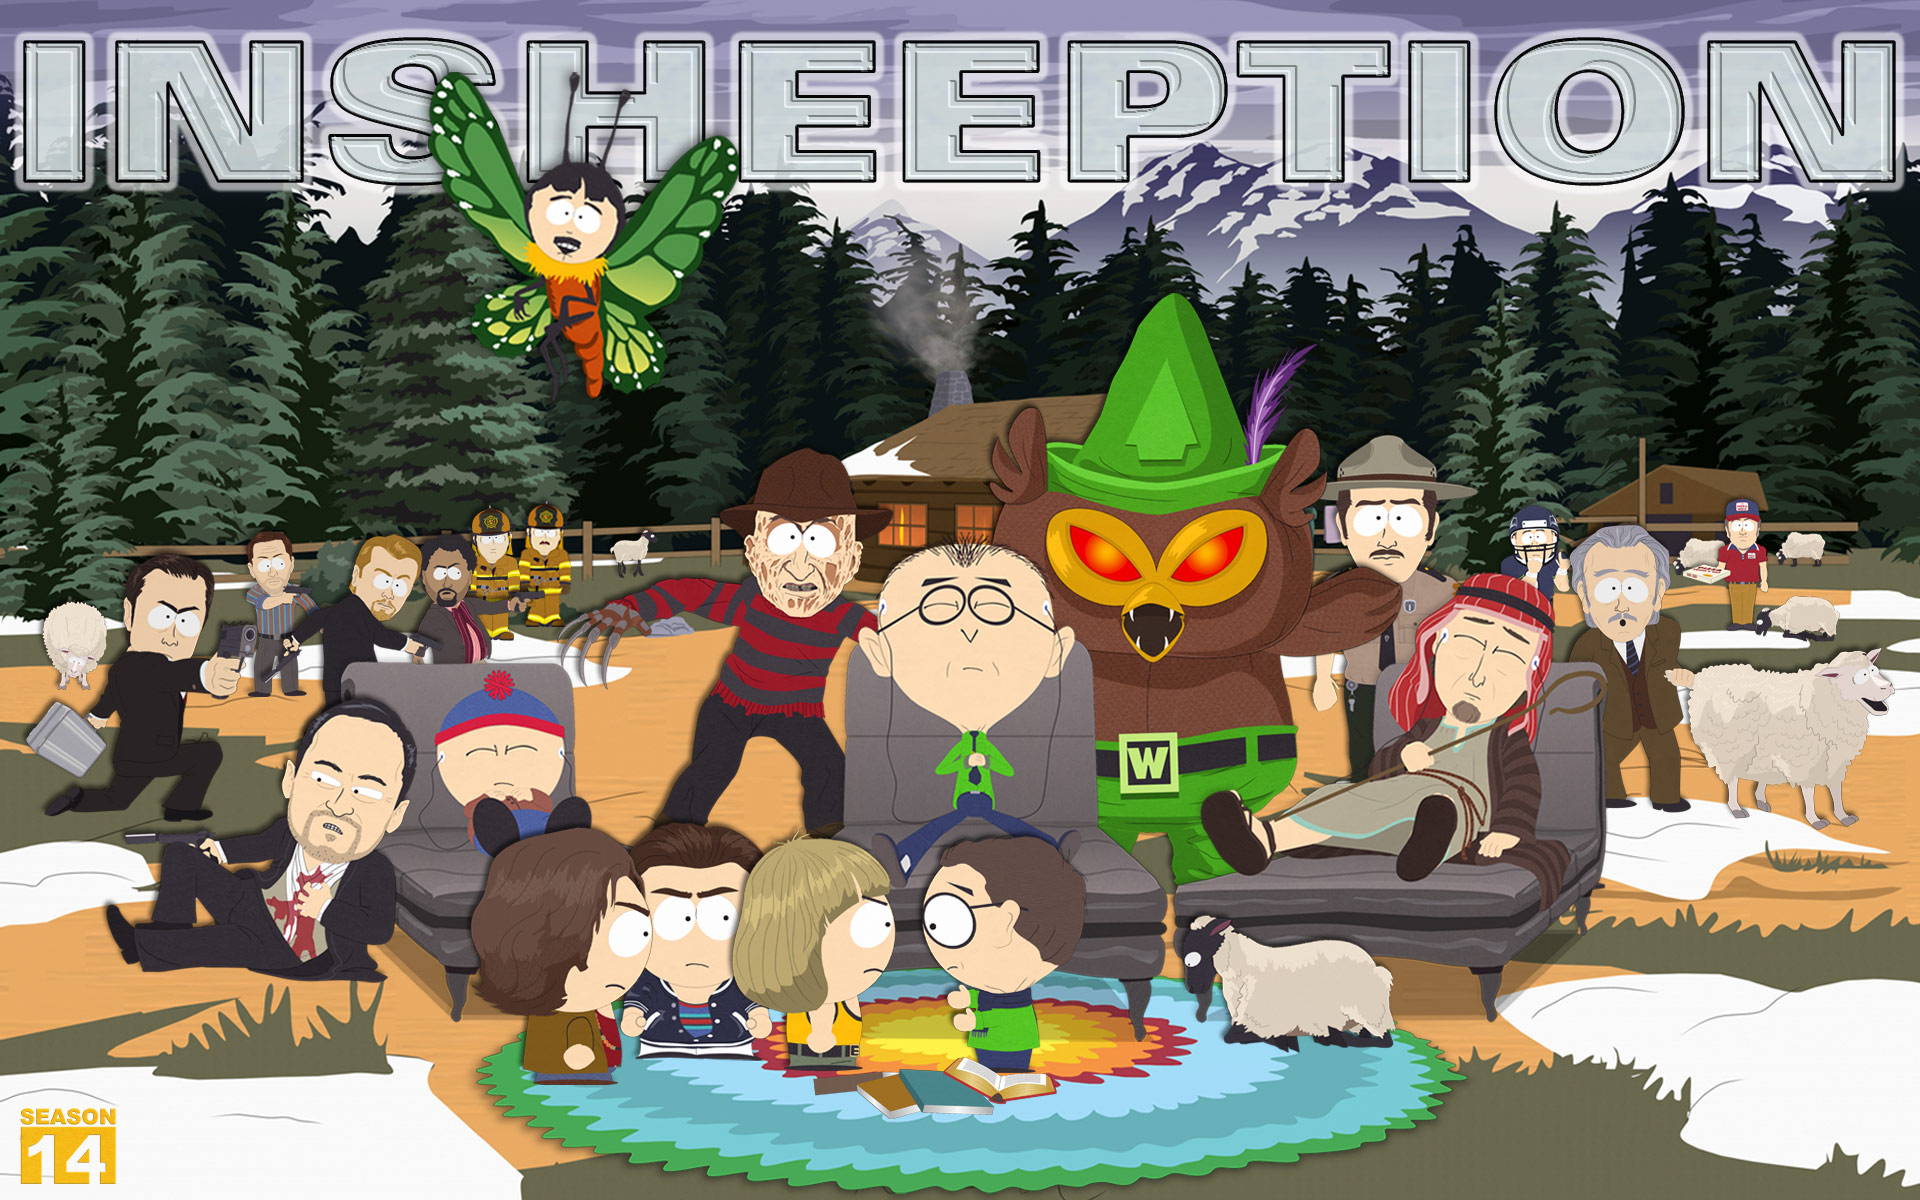 south park book essay Free essay: this satirical genius has evolved from hilarious adventures of four colorado kids into an episode a week of pure cultural parody with race.